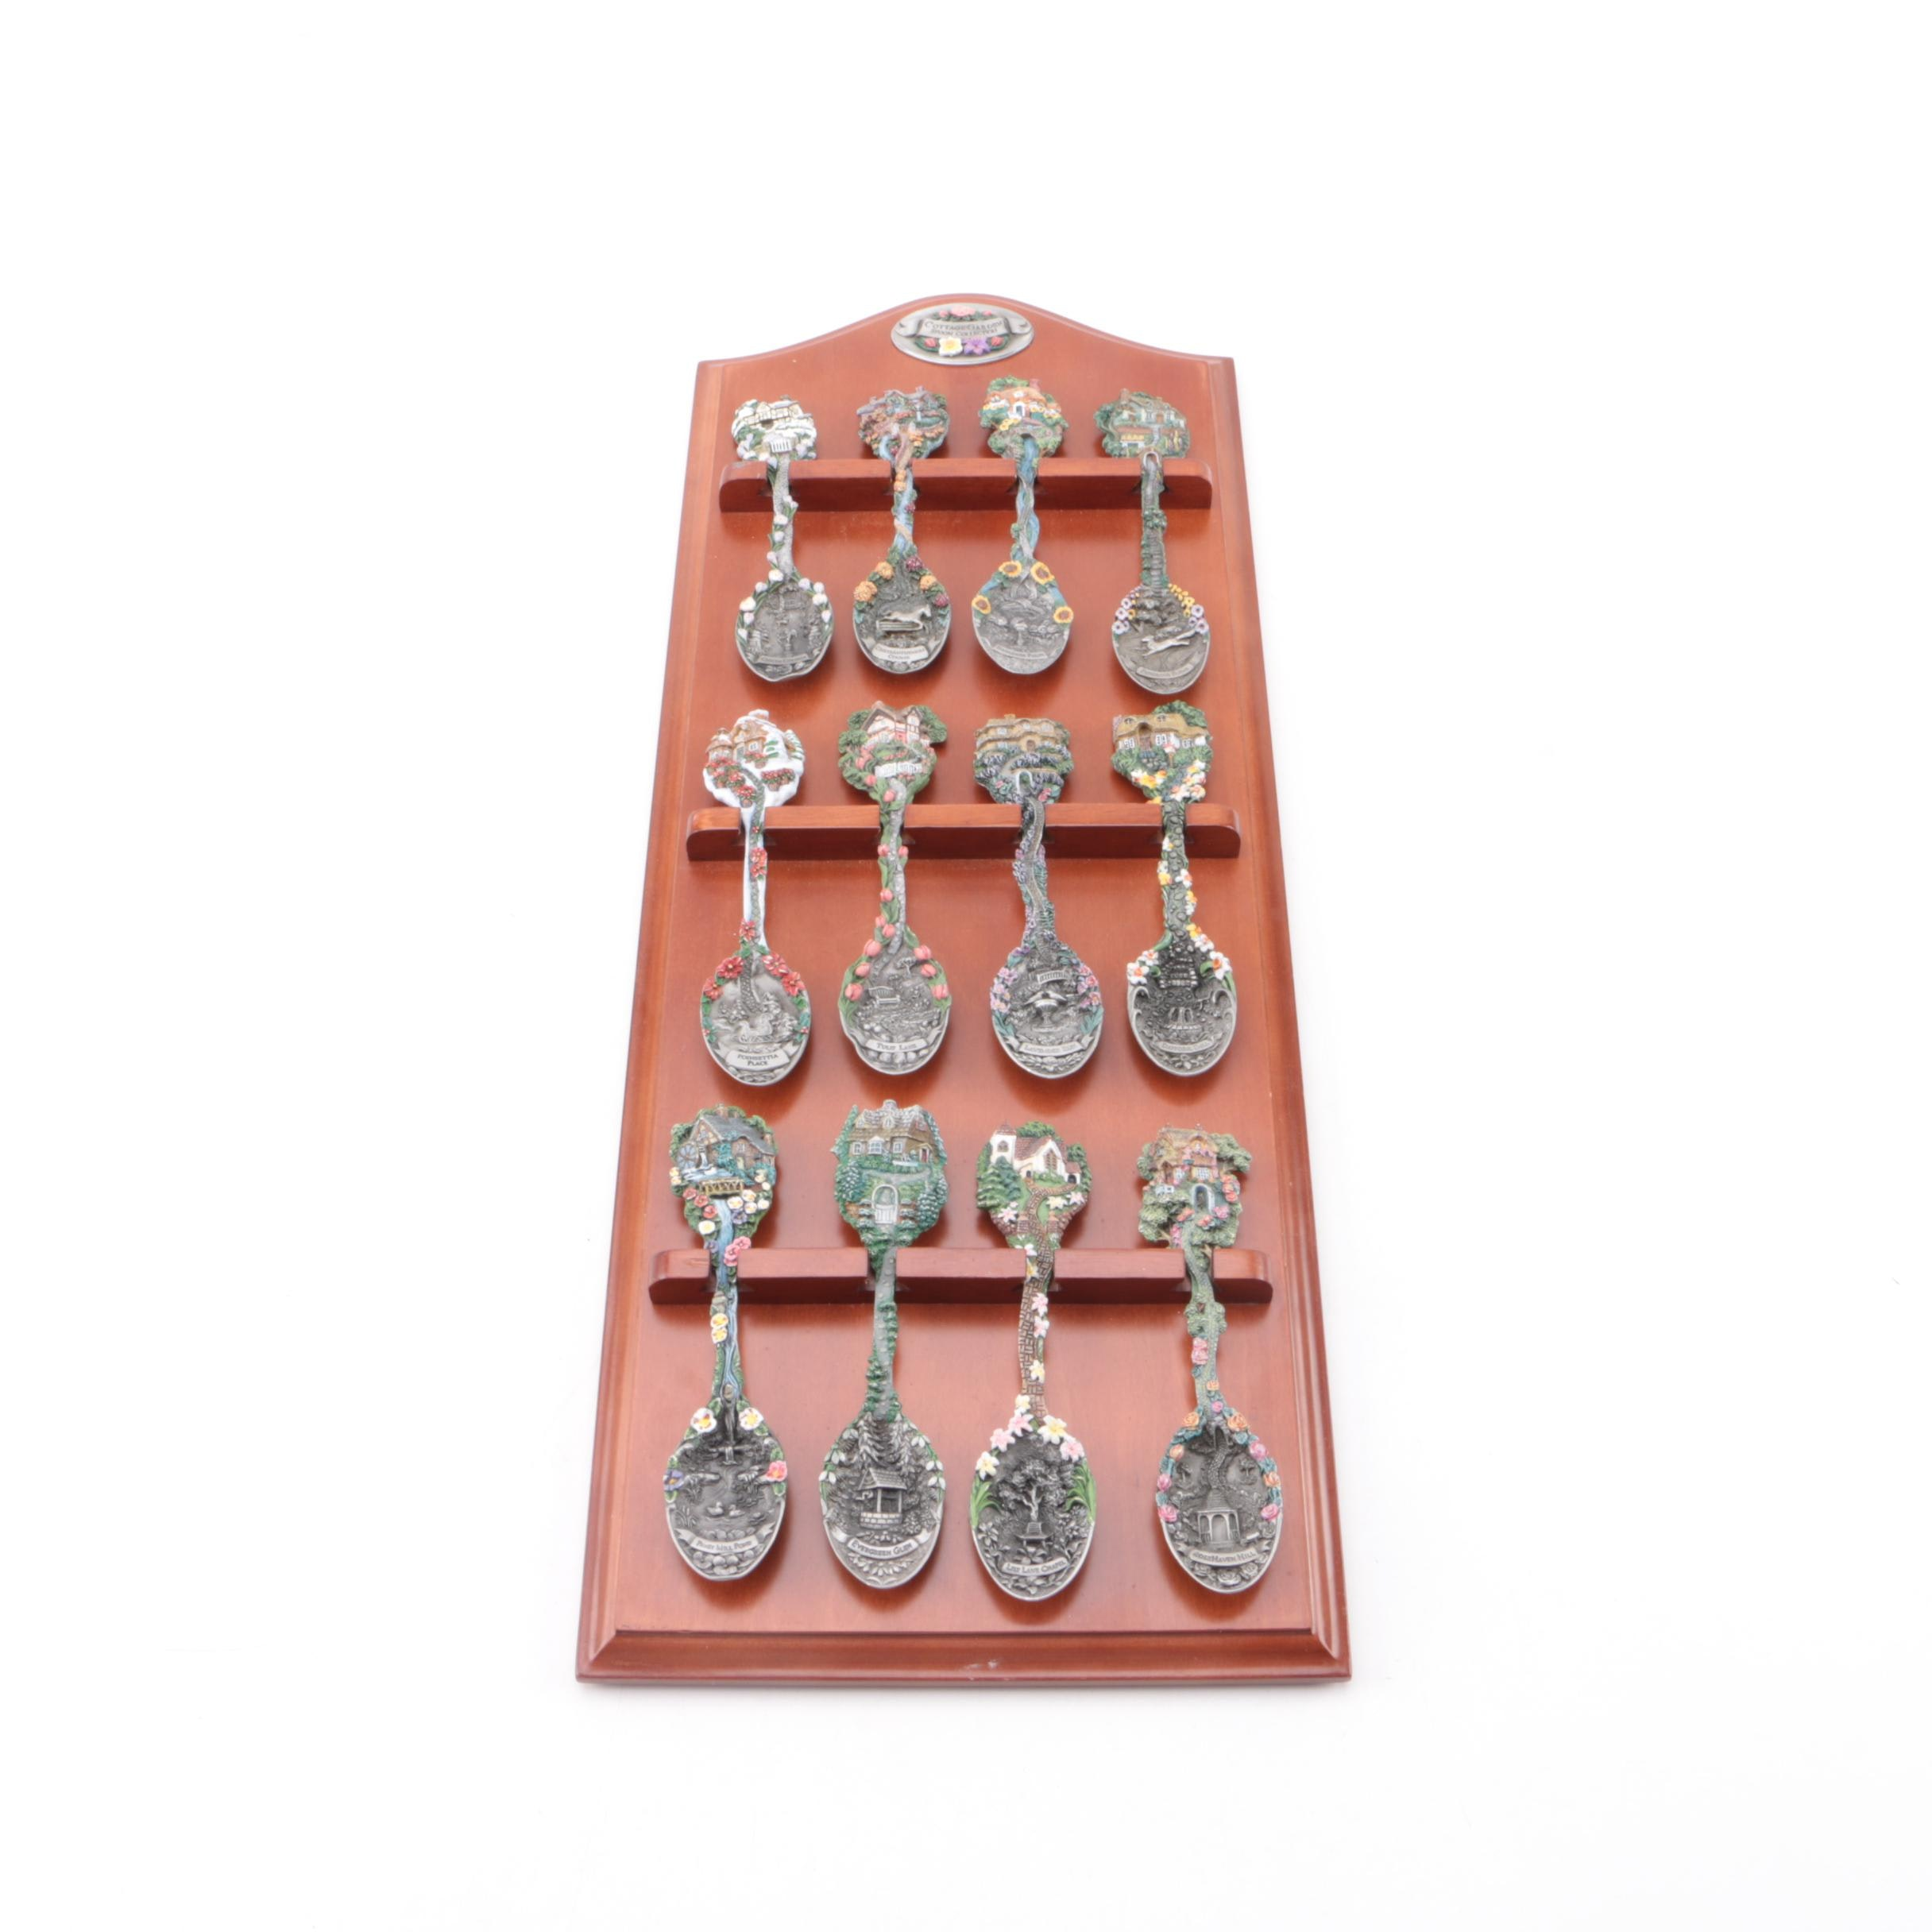 The Franklin Mint Pewter Cottage Garden Spoon Collection